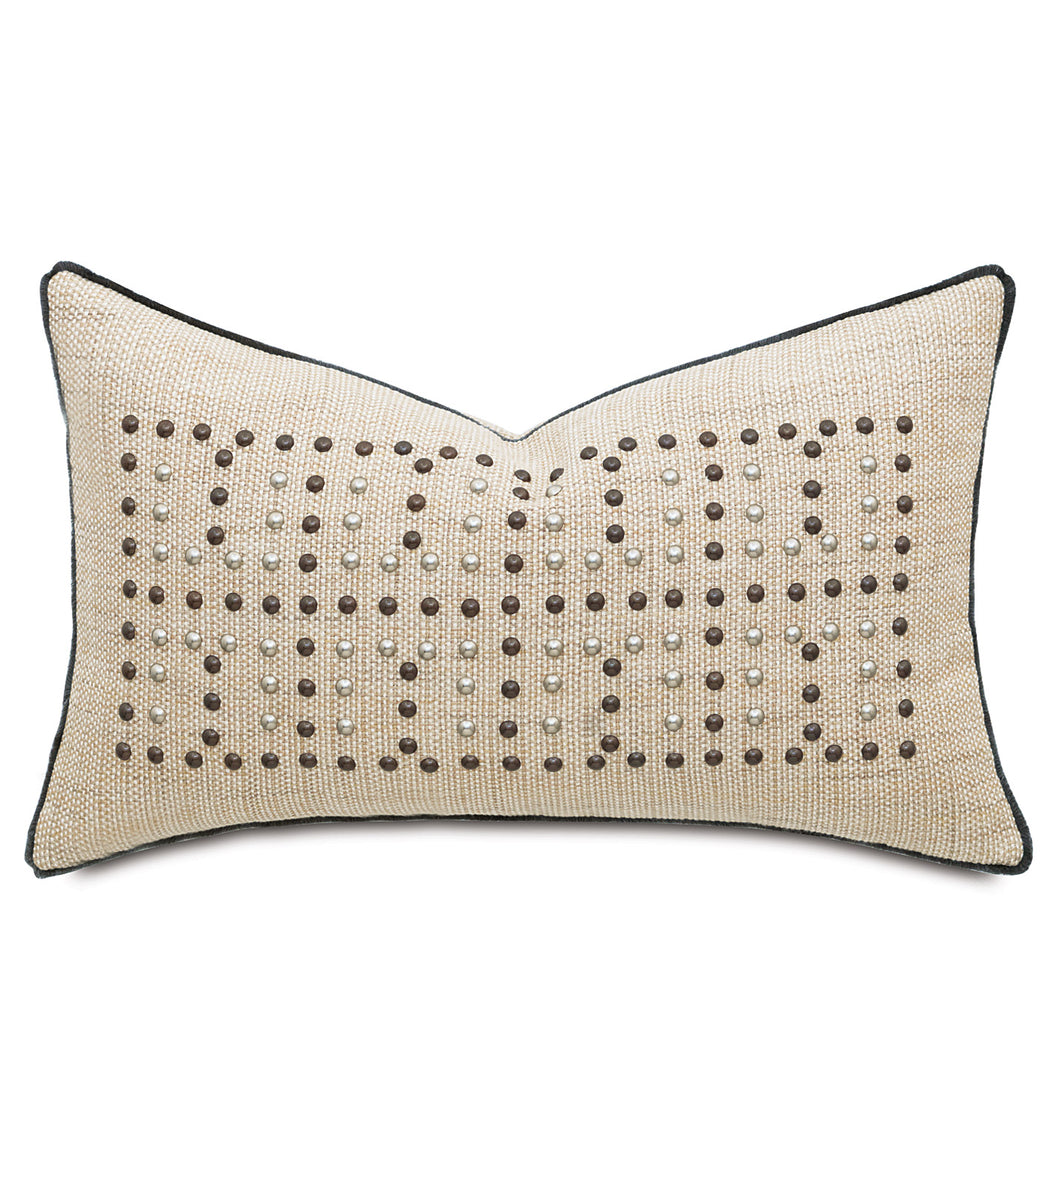 Landon Sand Champagne Mountain Resort Studded Lumbar Pillow 15